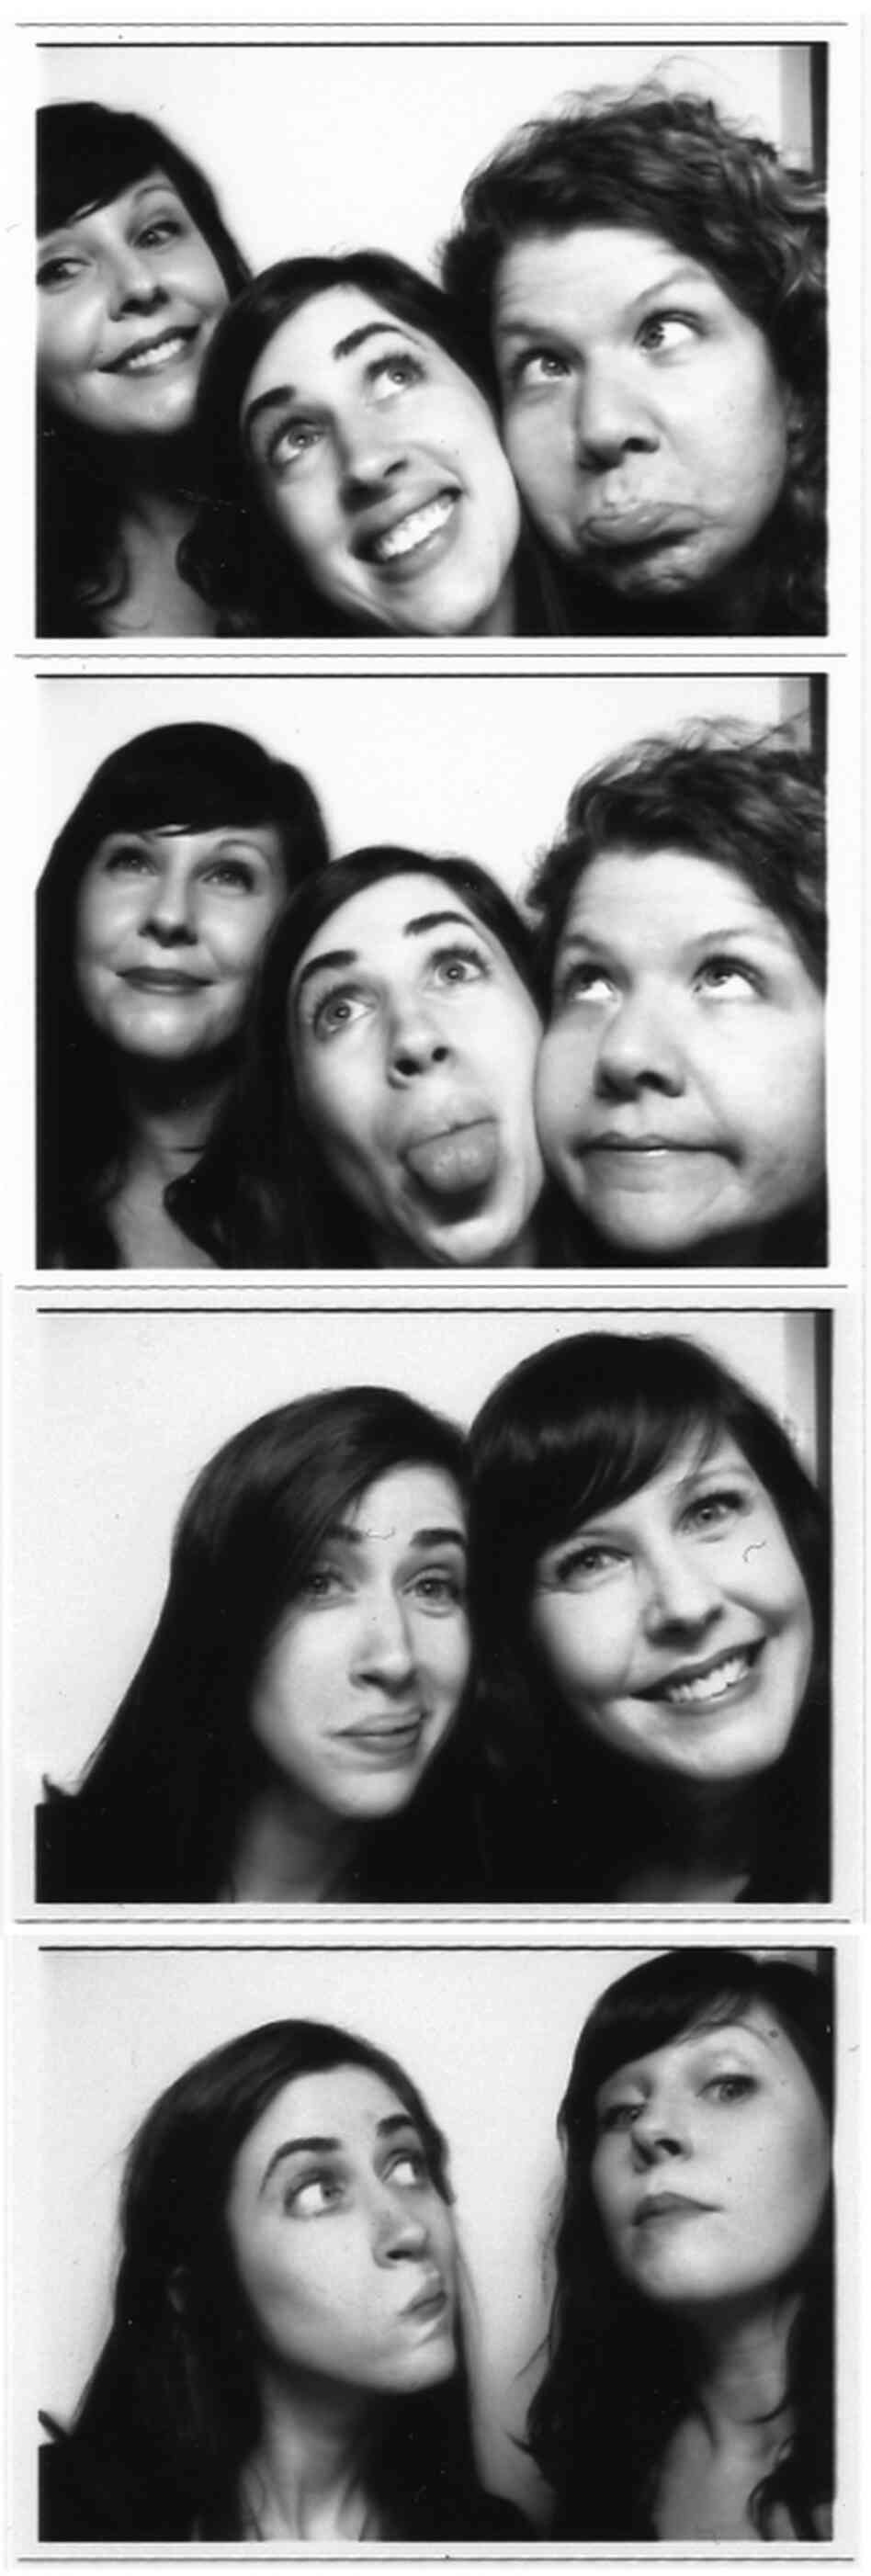 NPR's Creative Services team at the 2011 DC ADDY Awards (Top image, l to r): Betsy Martin, Katie Burk and Kathie Miller